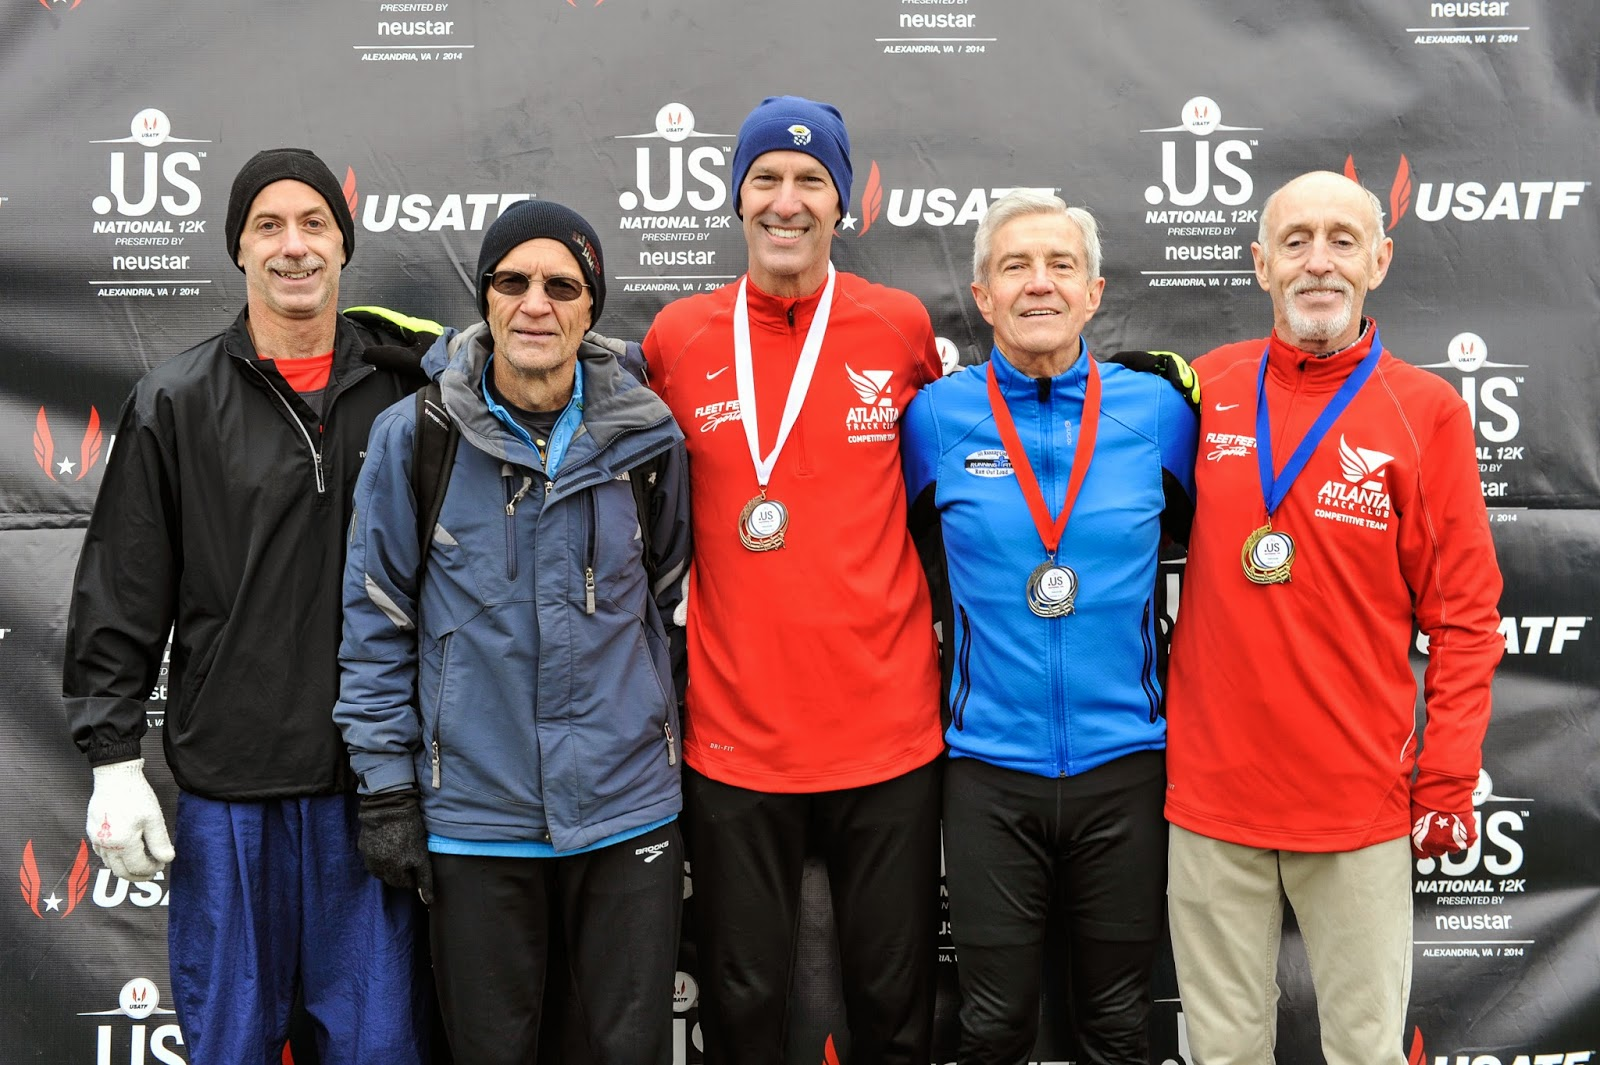 The Running Professor November 2014 Richard 4847 Ttec Automotive Electronics Us Nationals 12 K Championship In Alexandria Virginia On 16 From Left Eric Stuber 5th Rick Becker 4th Ken Youngers 3rd Doug Goodhue 2nd